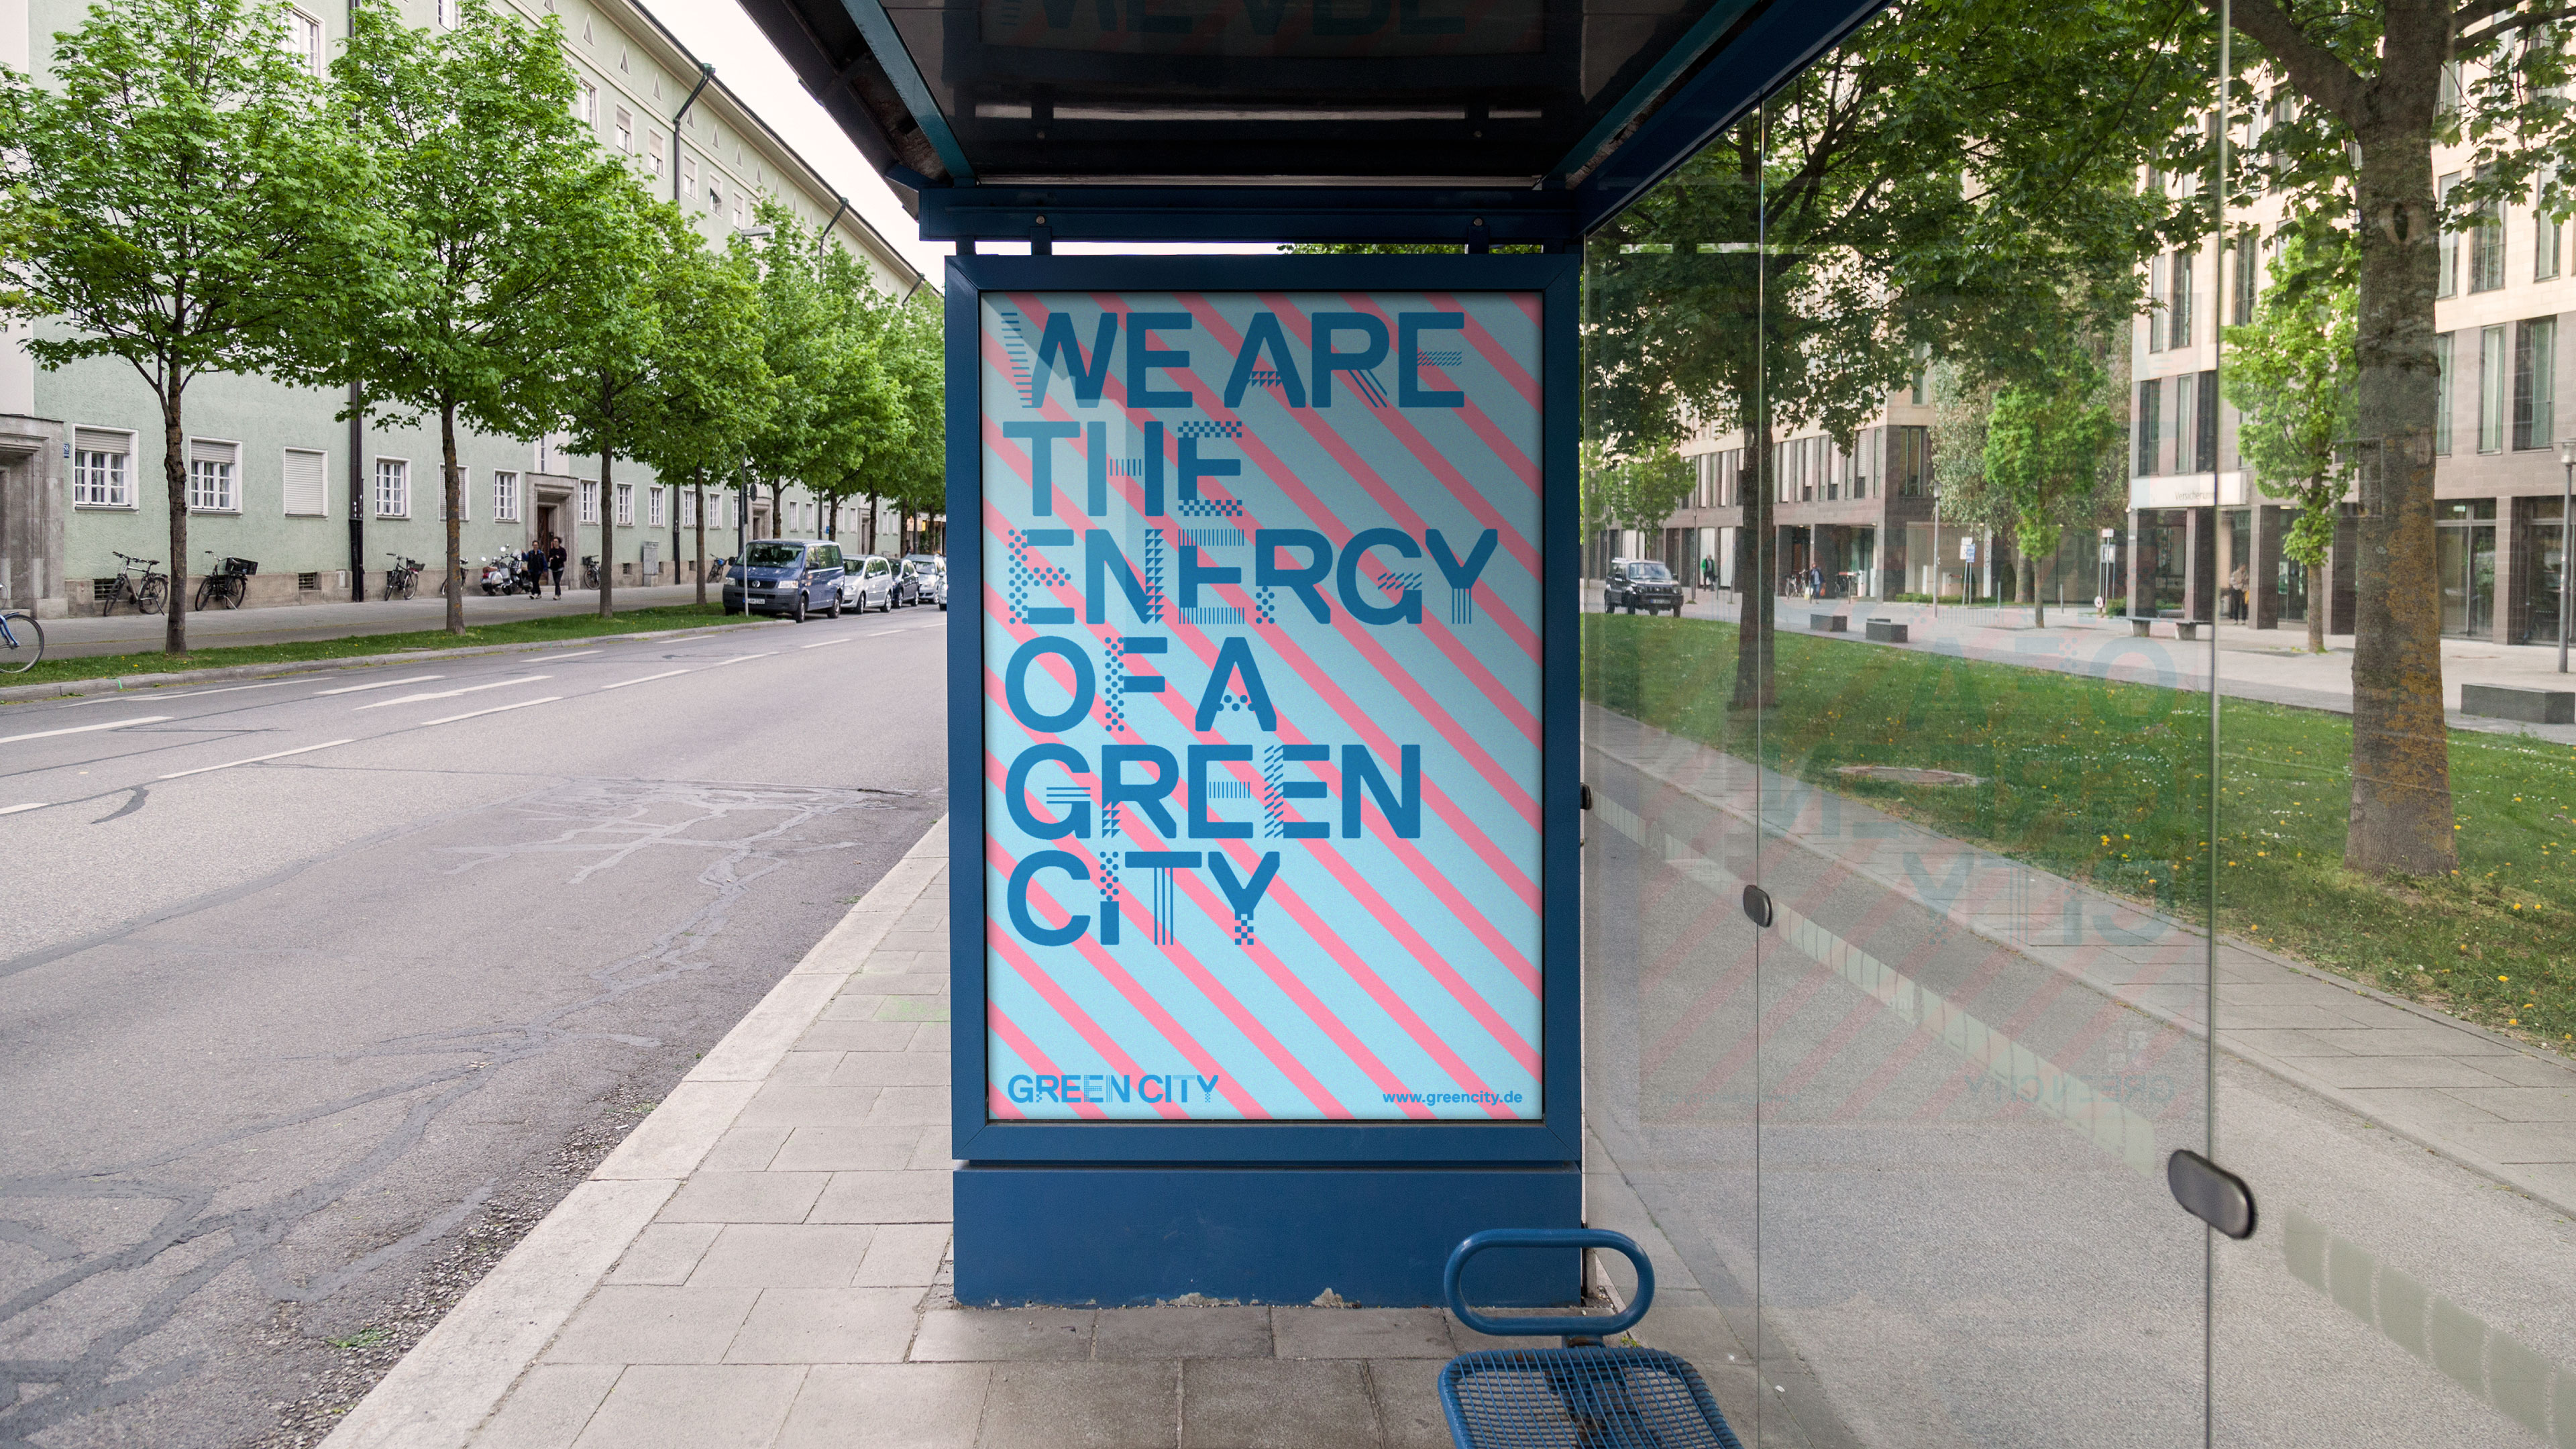 A new Green City poster hangs at a bus stop.